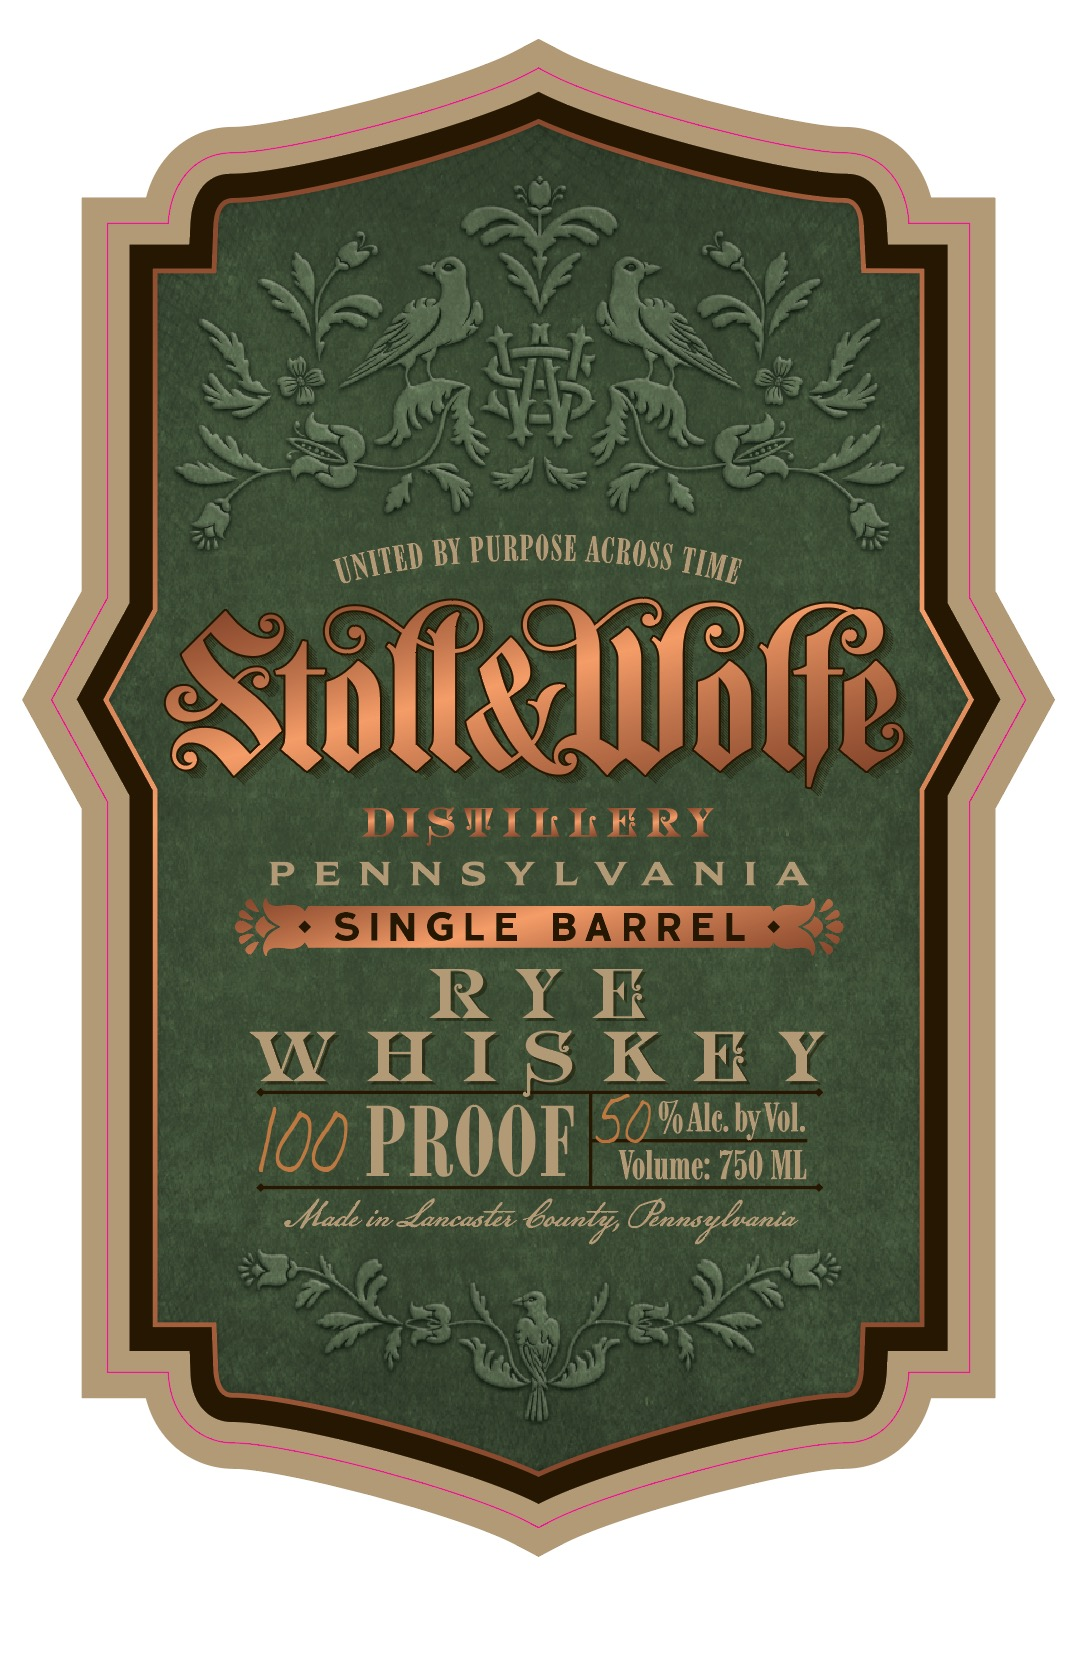 Stoll & Wolfe Single Barrel Pennsylvania Rye Whiskey Label